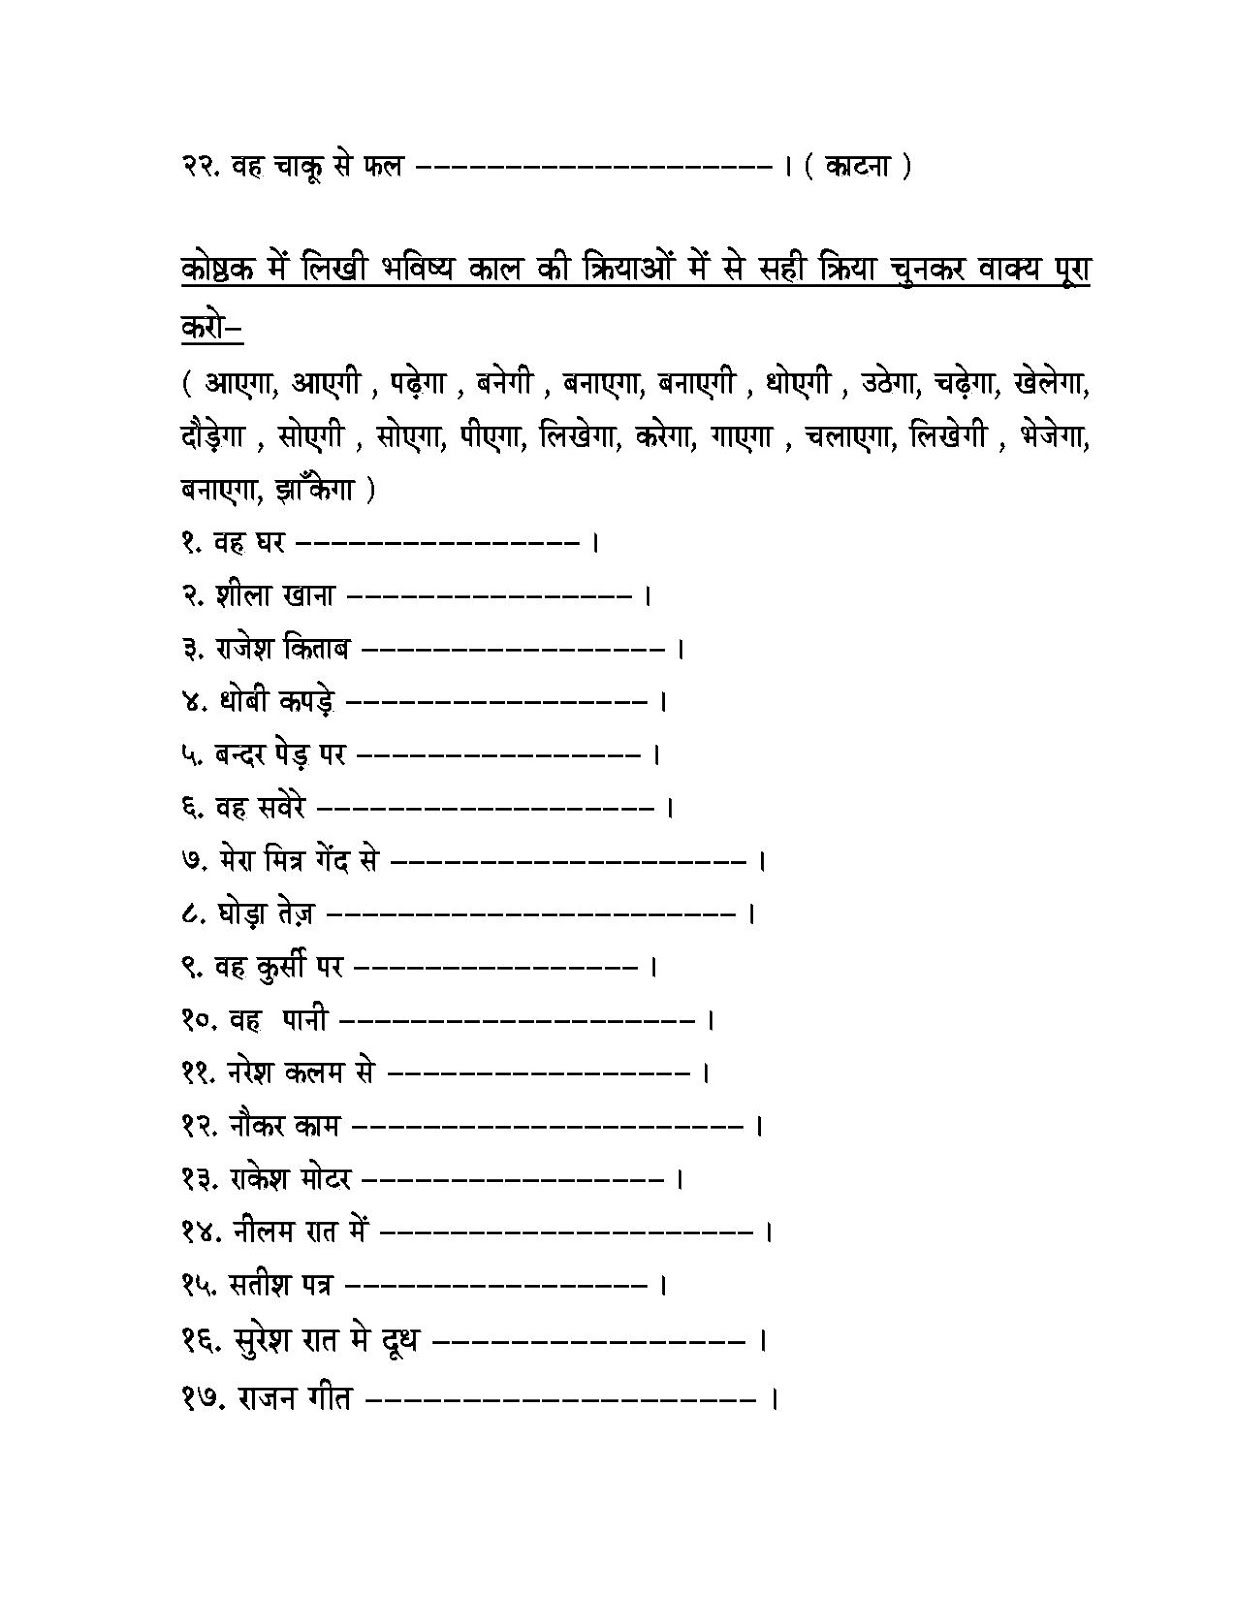 math worksheet : hindi grammar work sheet collection for classes 56 7 ...